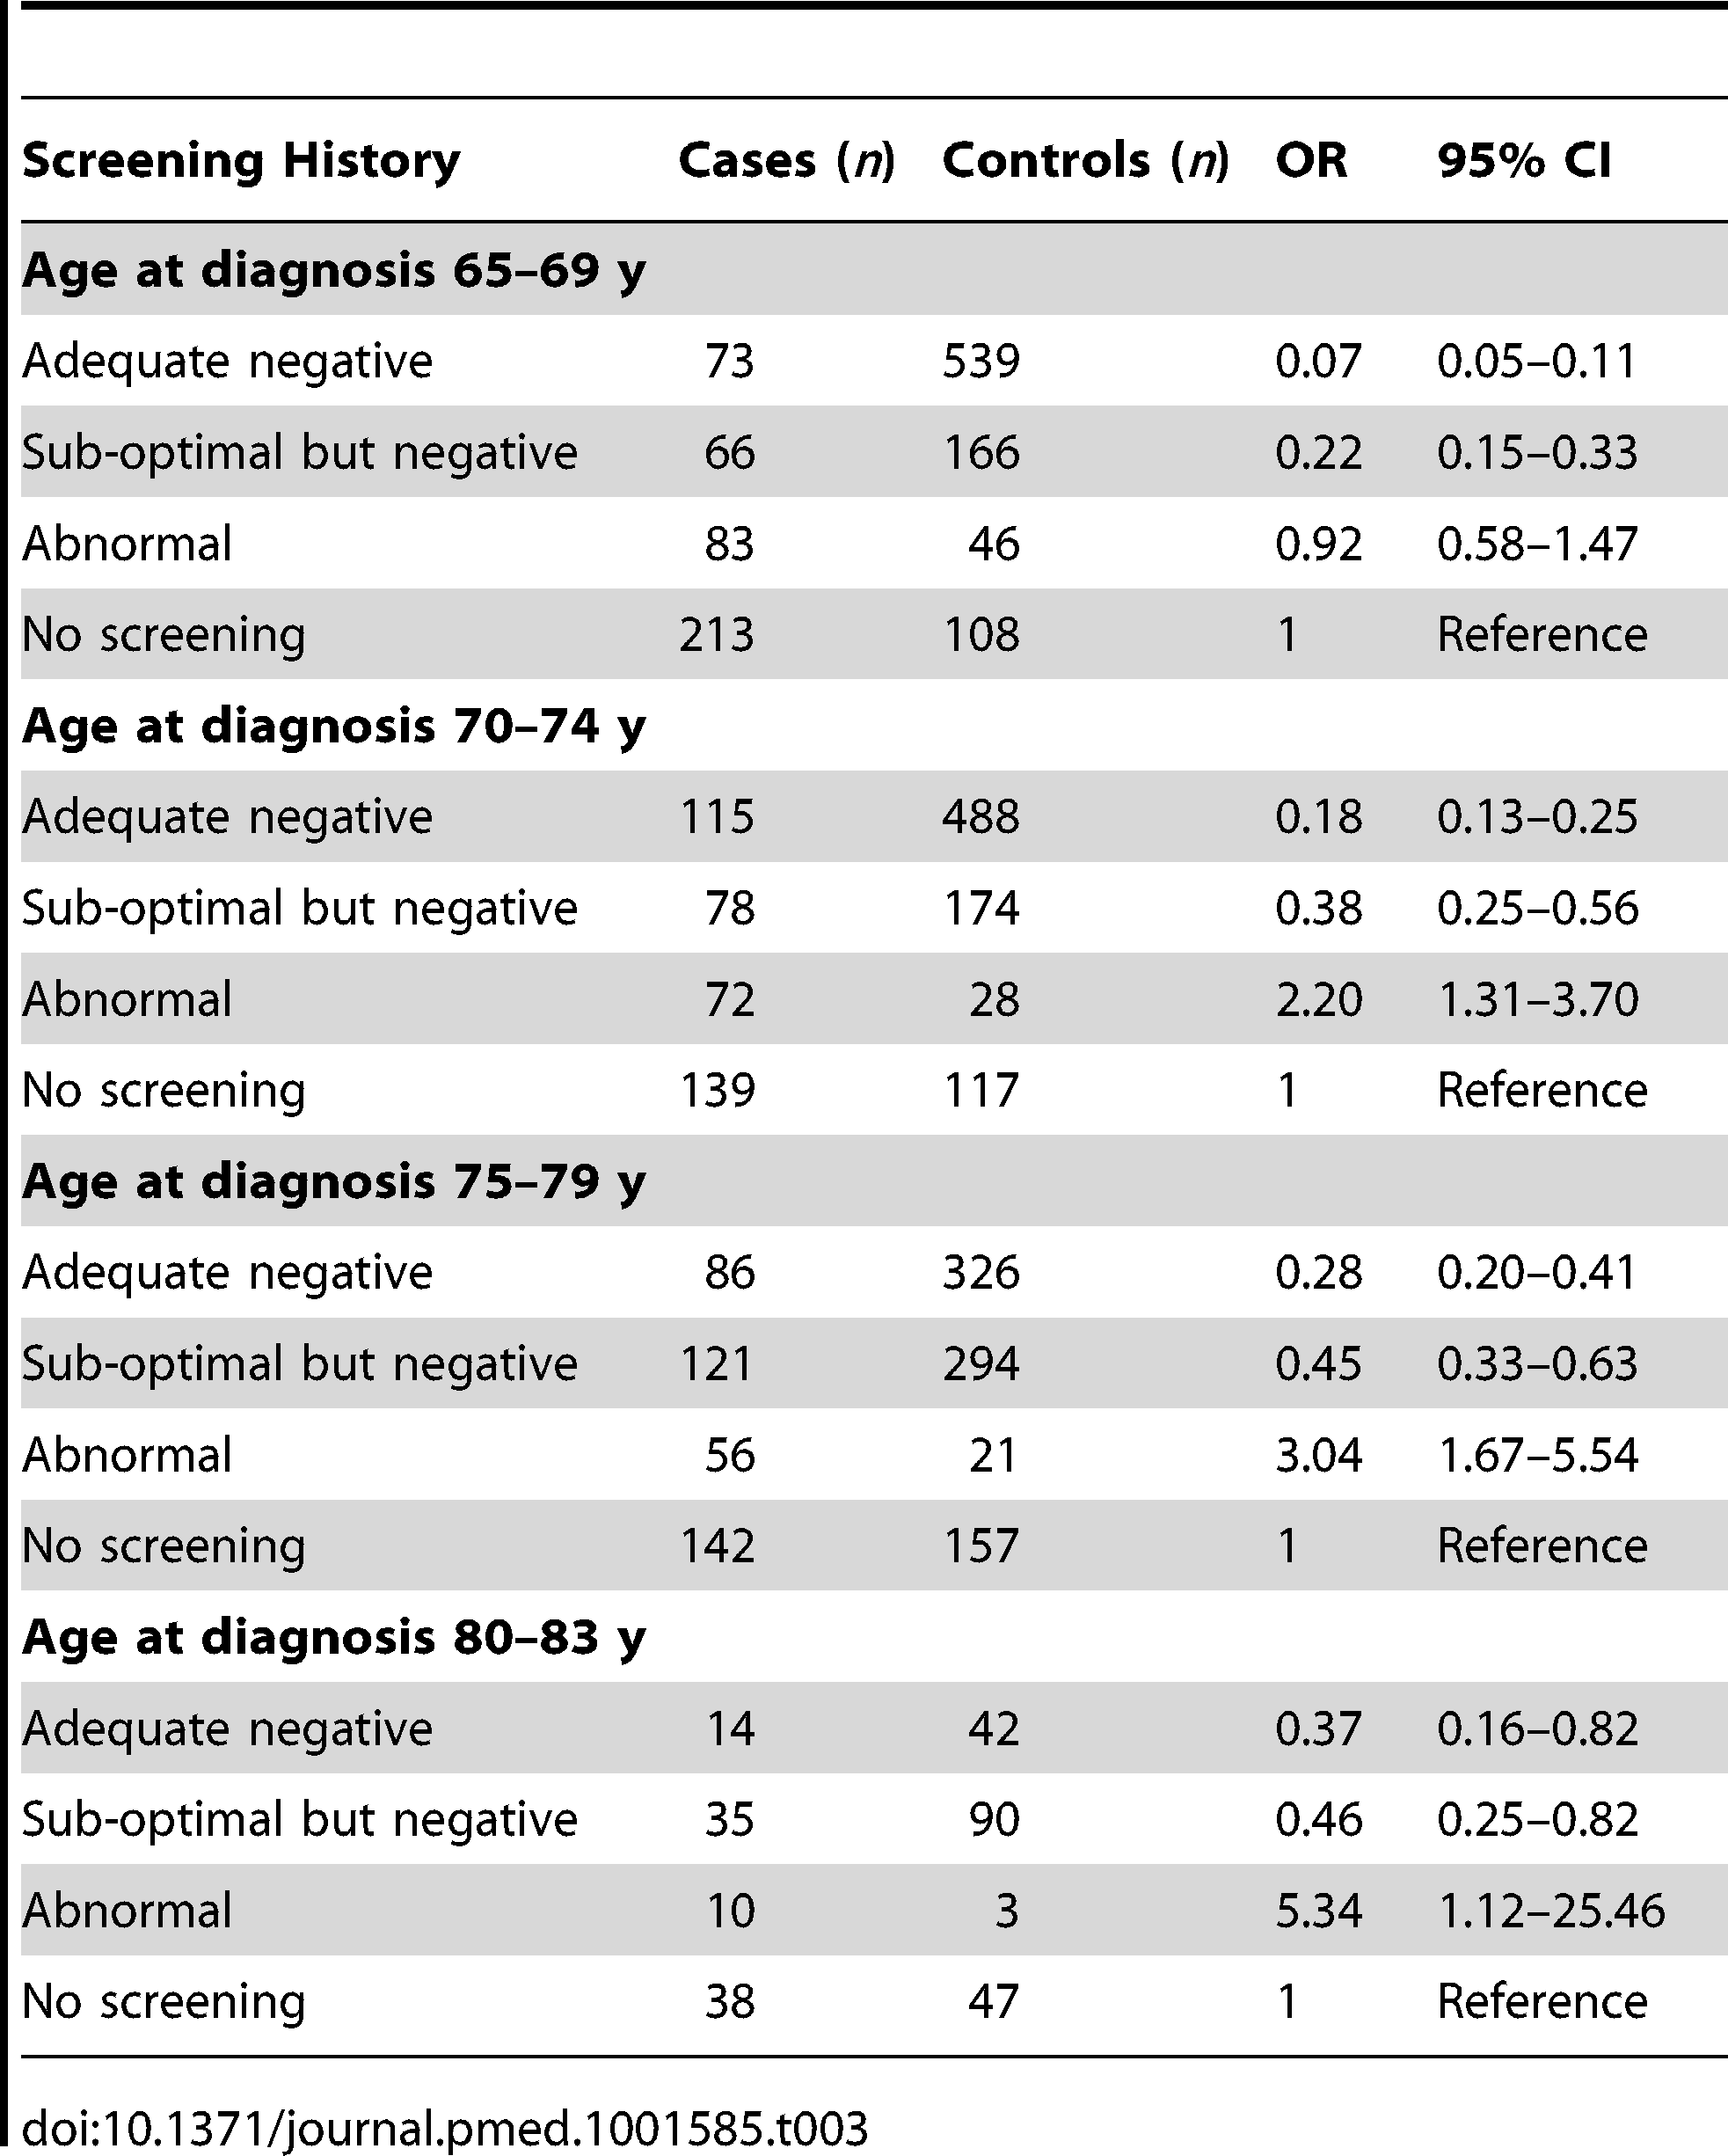 Risk of cervical cancer according to screening history at age 50–64 y by age at diagnosis.